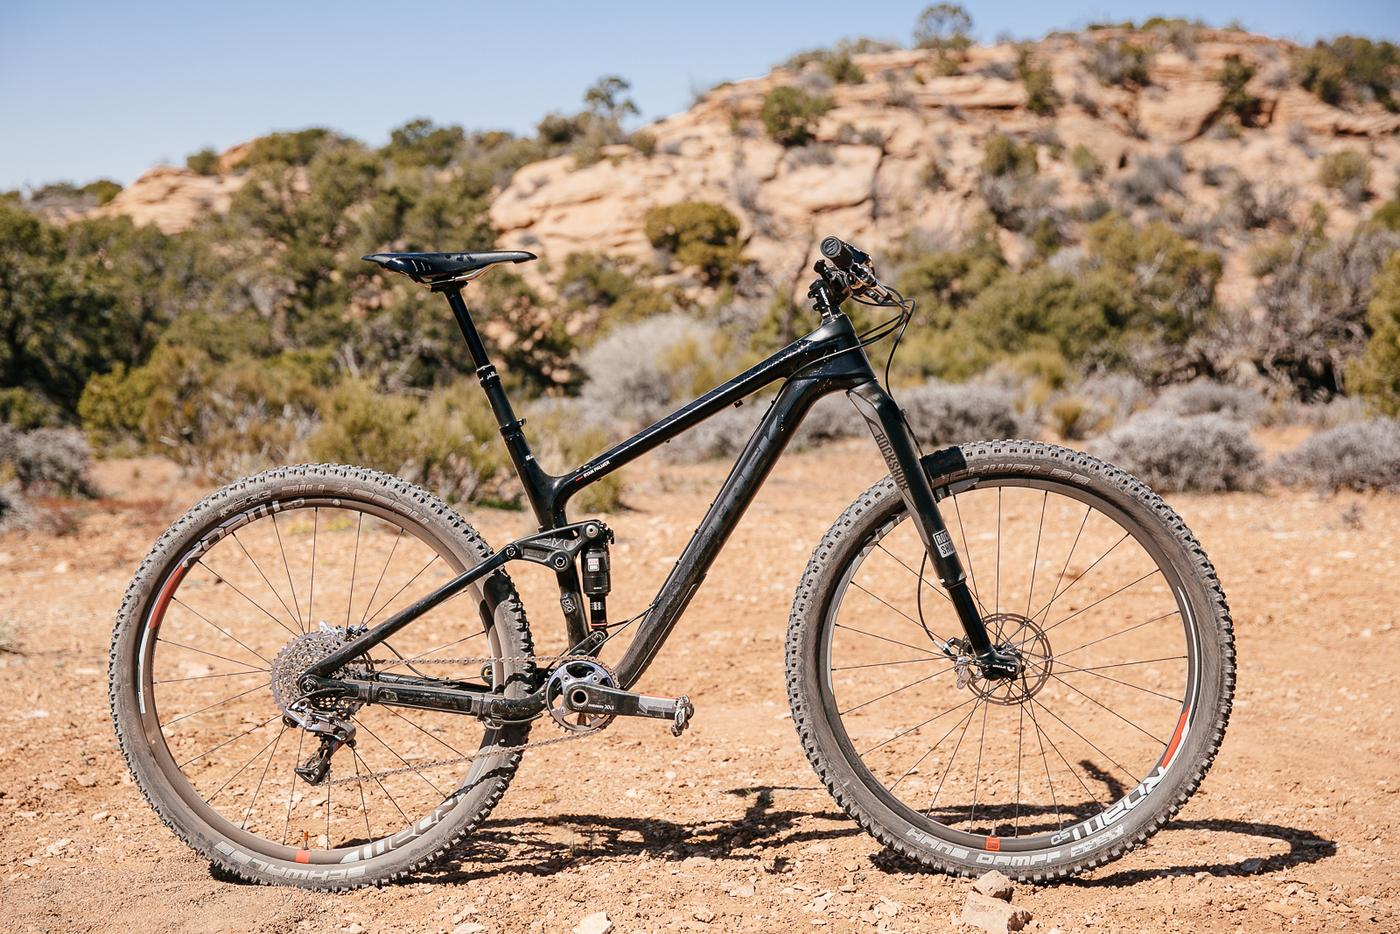 Initial Reaction: The Rock Shox RS-1 Inverted Fork